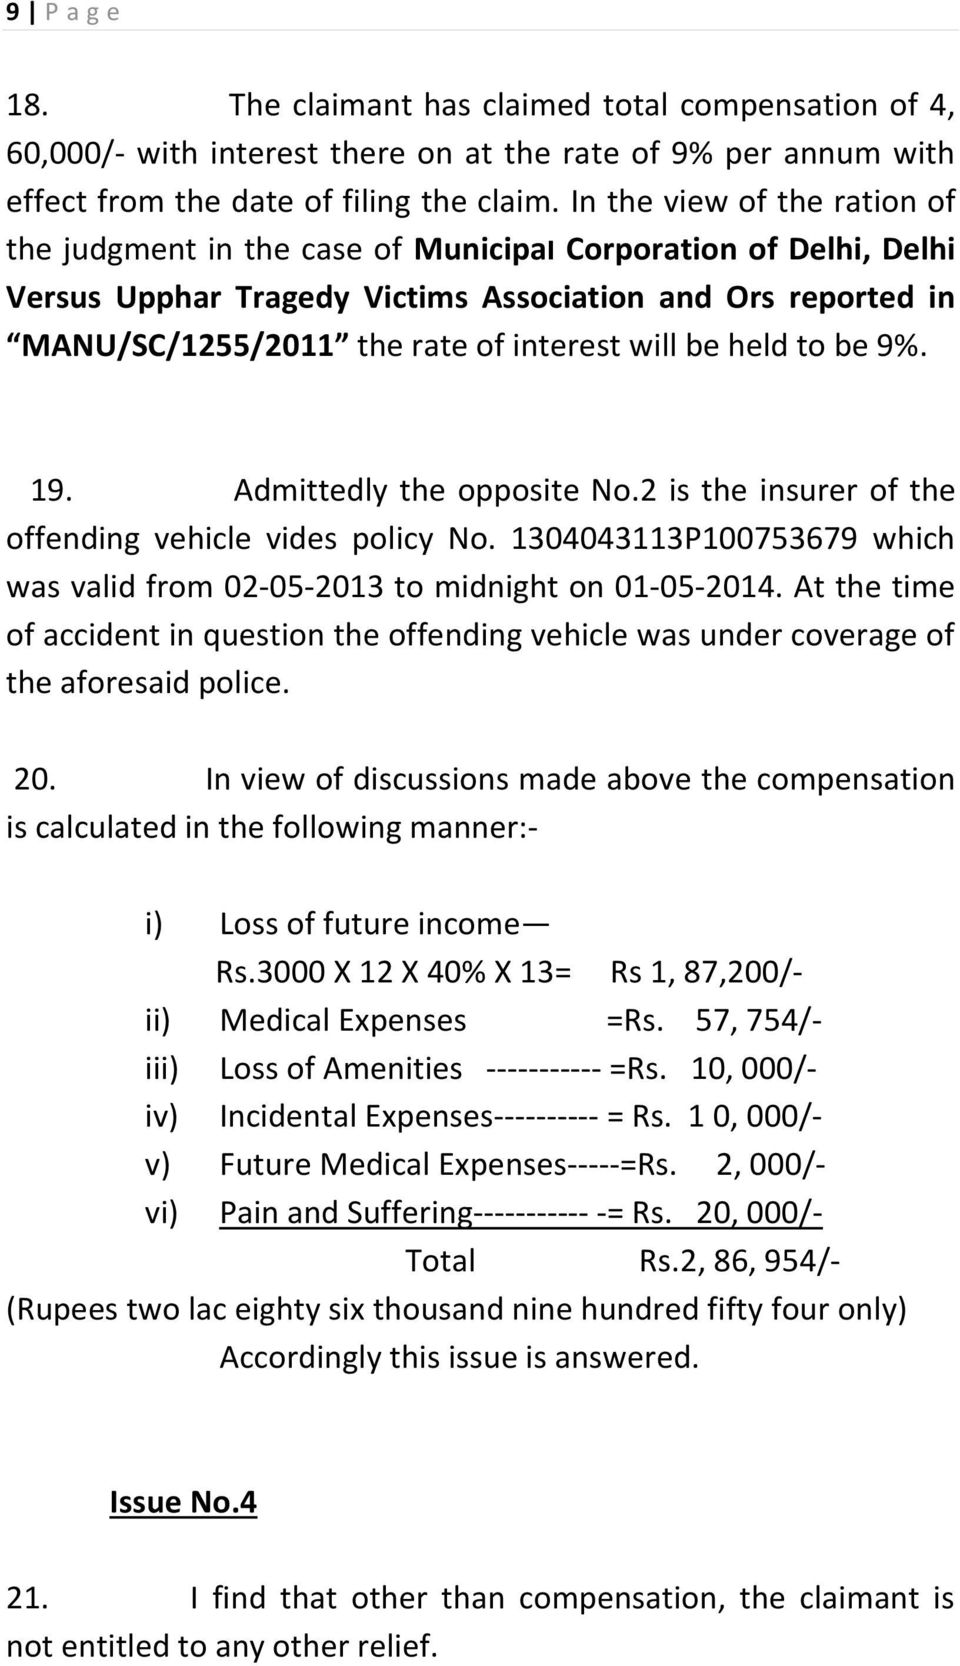 will be held to be 9%. 19. Admittedly the opposite No.2 is the insurer of the offending vehicle vides policy No. 1304043113P100753679 which was valid from 02-05-2013 to midnight on 01-05-2014.